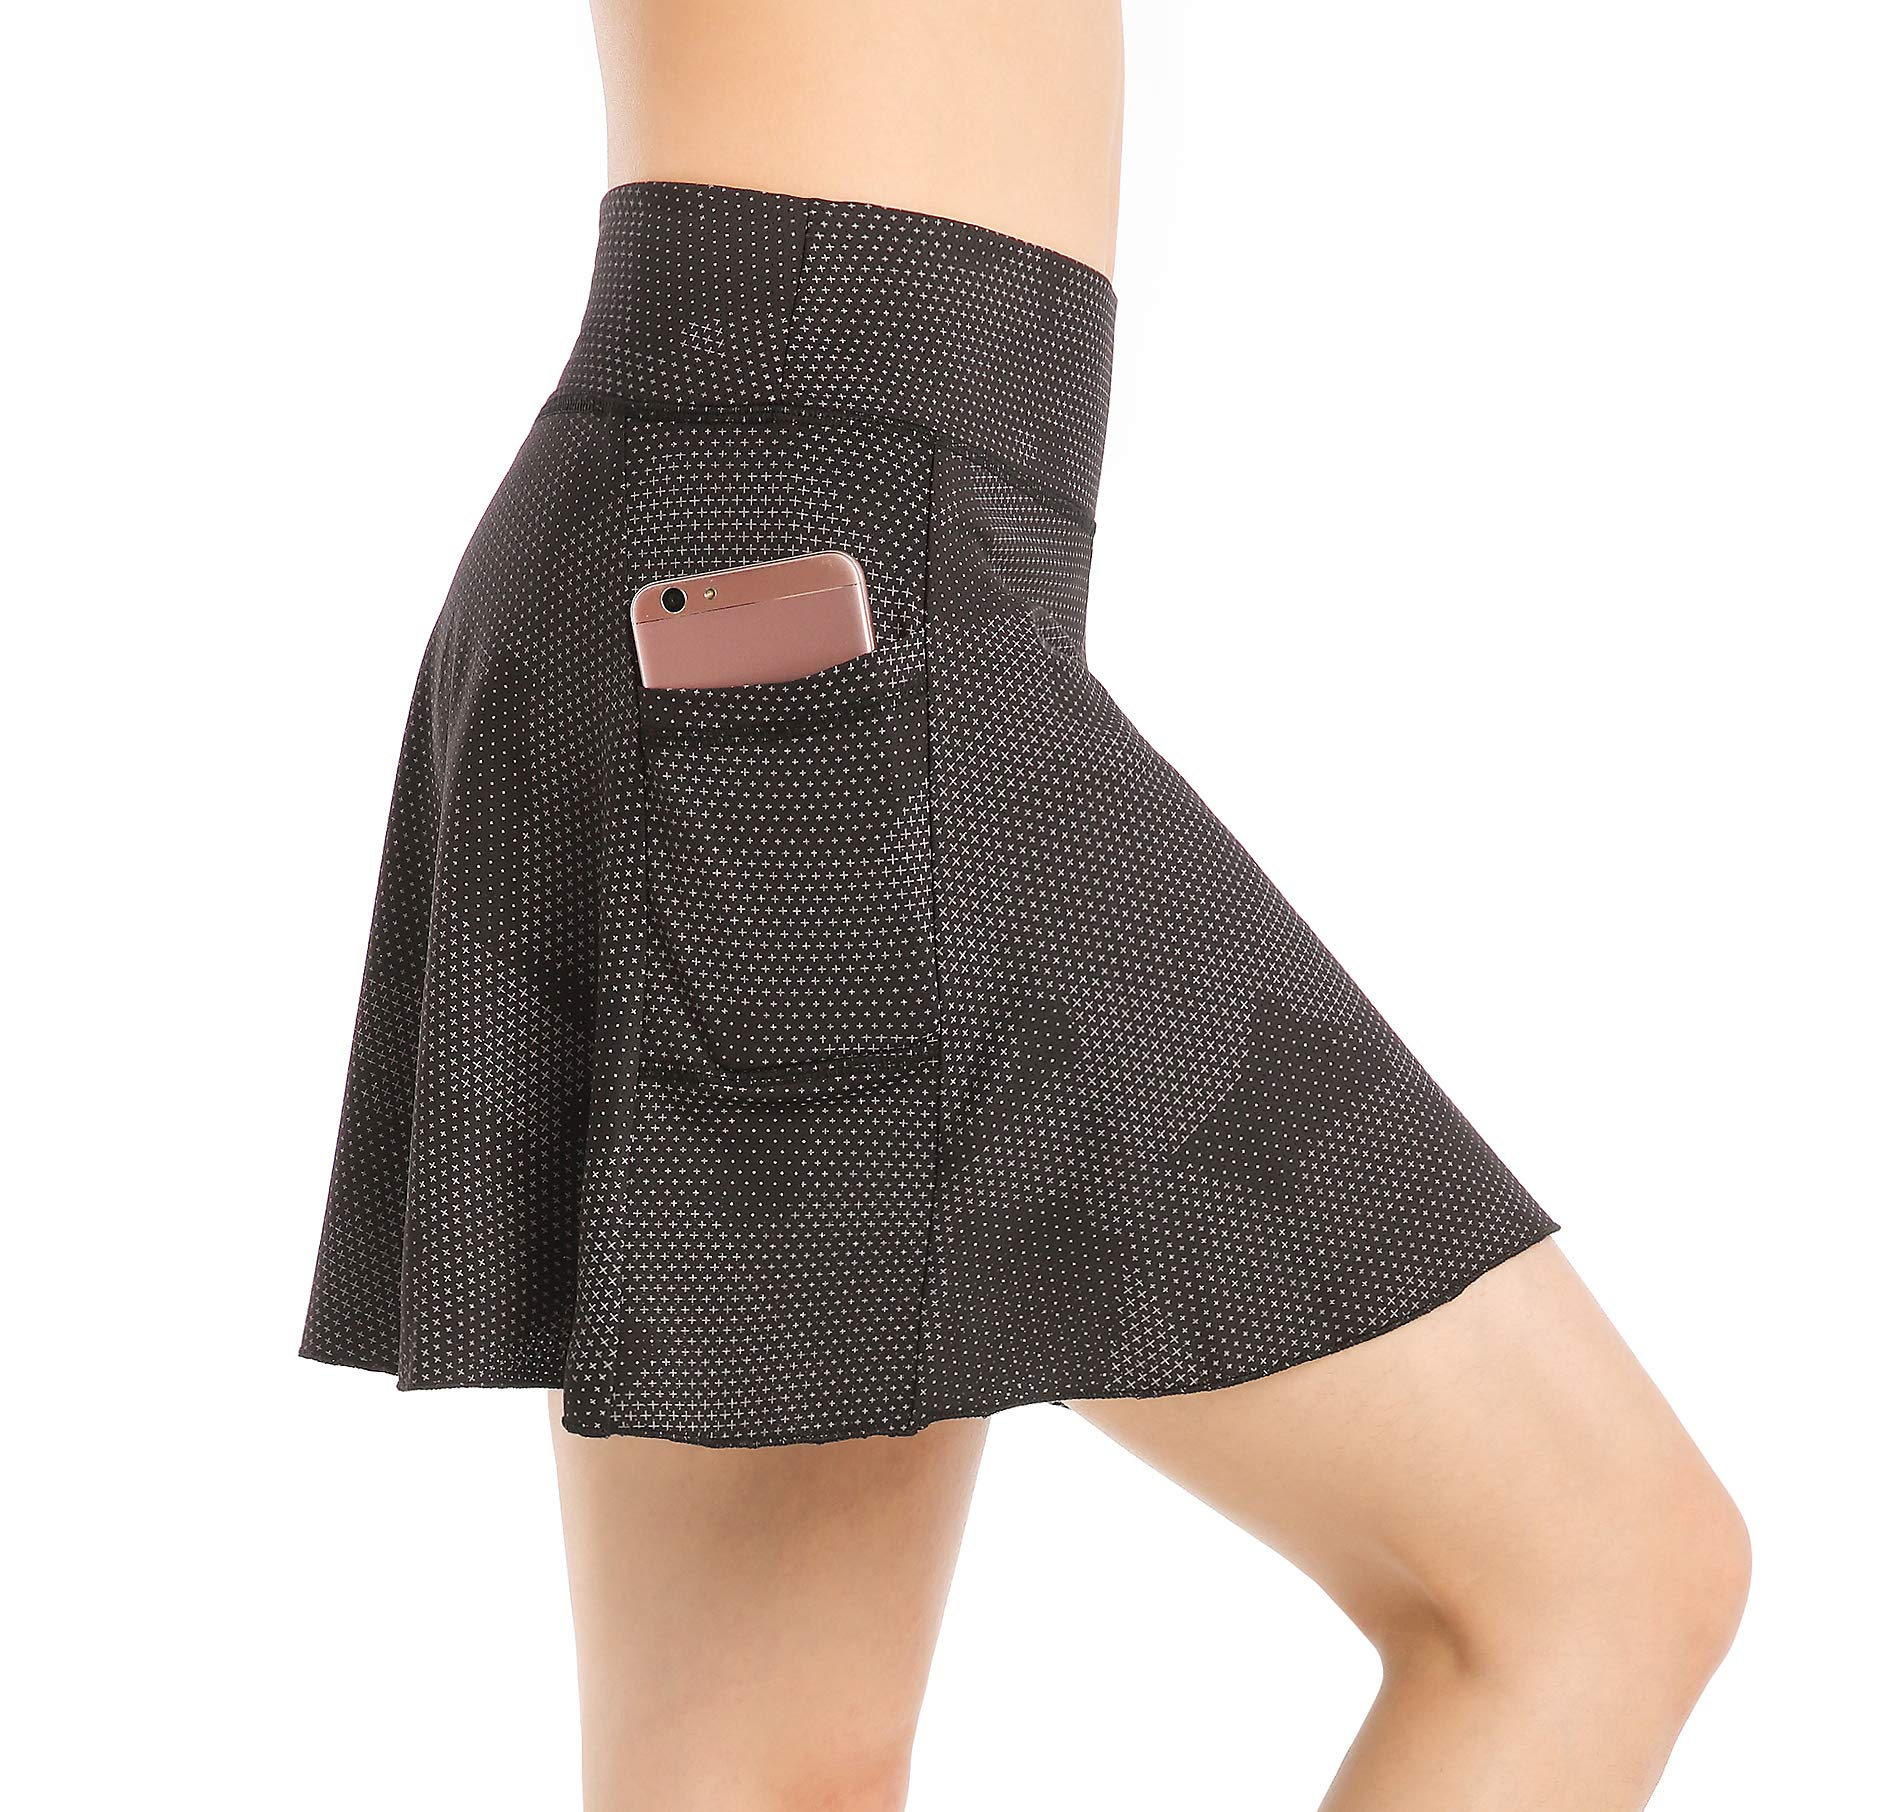 EAST HONG Women's Golf Skort Tennis Running Workout Skort (X- Large, Star Point Black) by EAST HONG